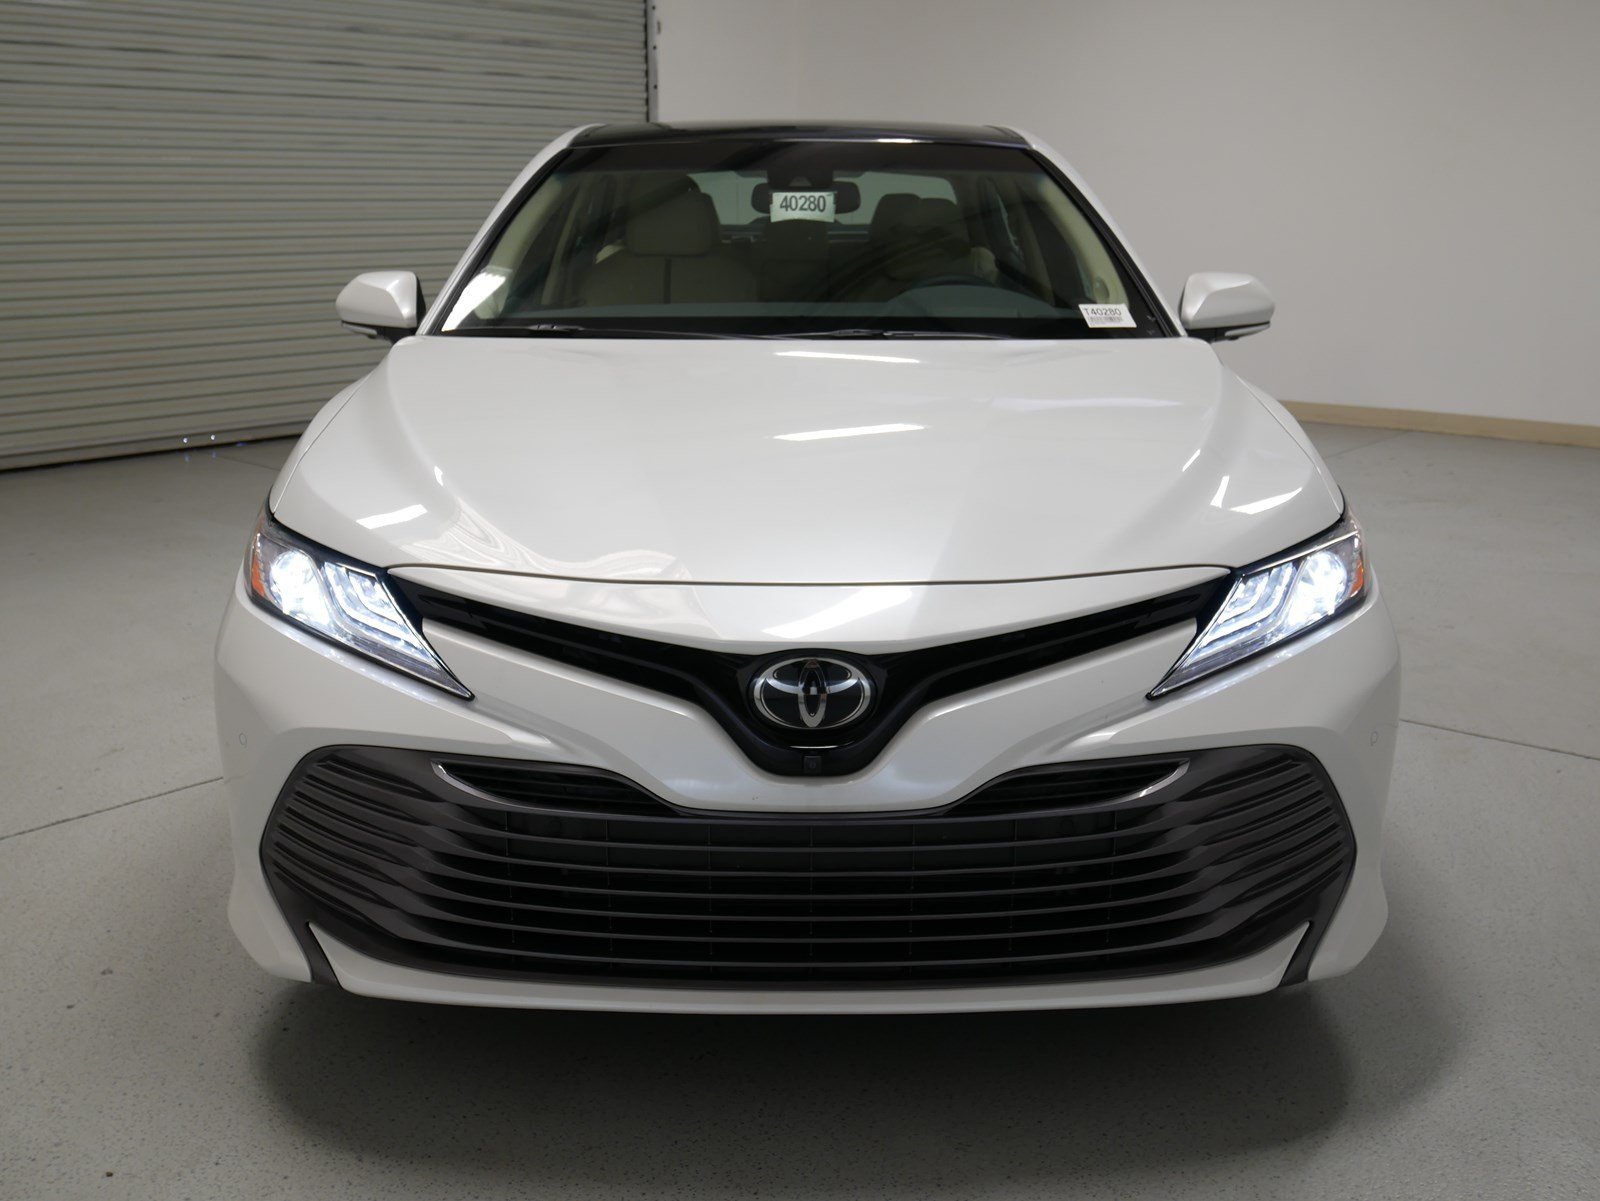 New 2018 Toyota Camry XLE V6 4dr Car in Prescott T